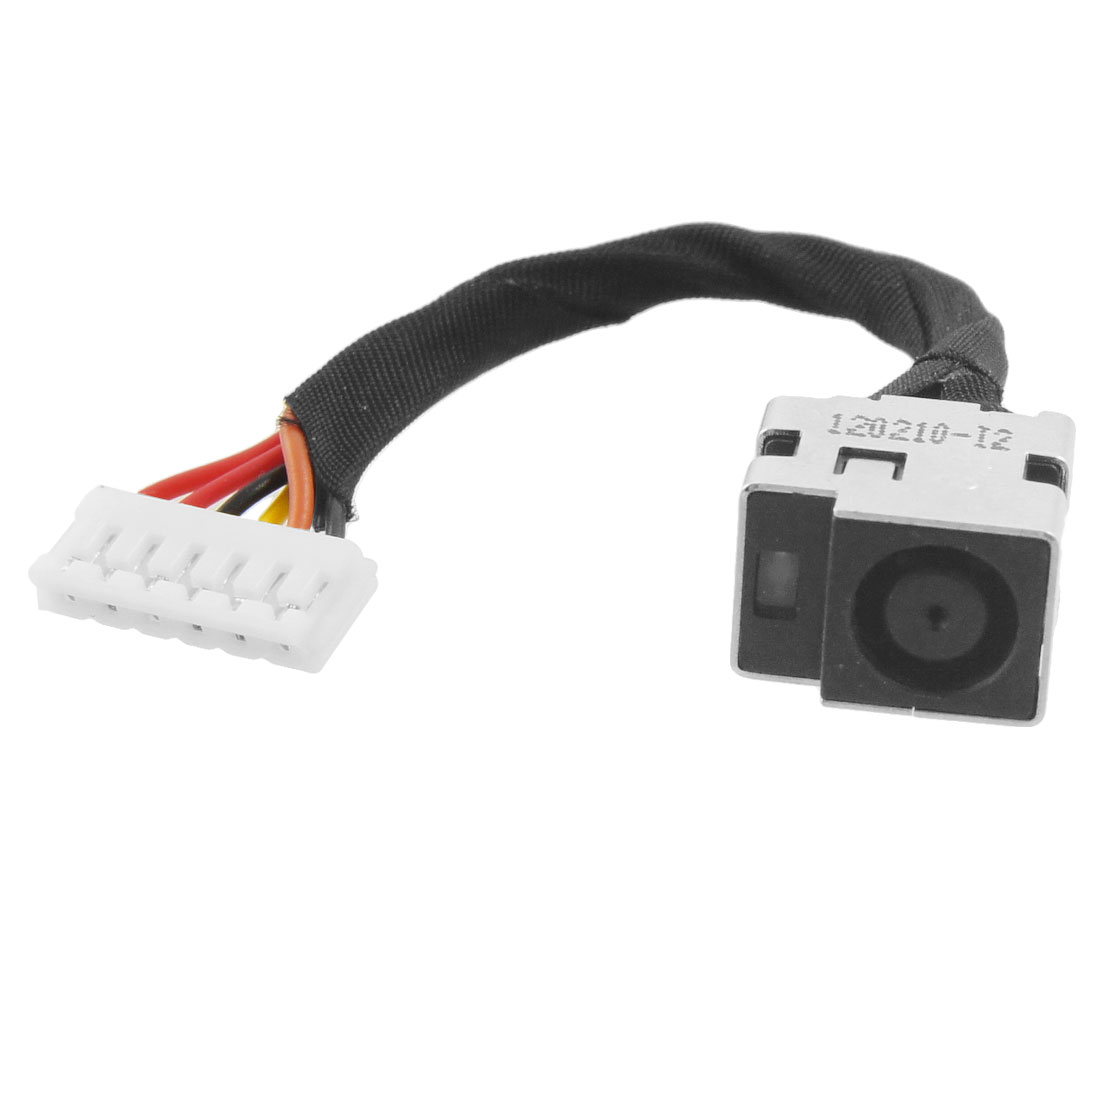 Laptop Notebook J247 DC Power Jack w Cable for HP CQ50 G60